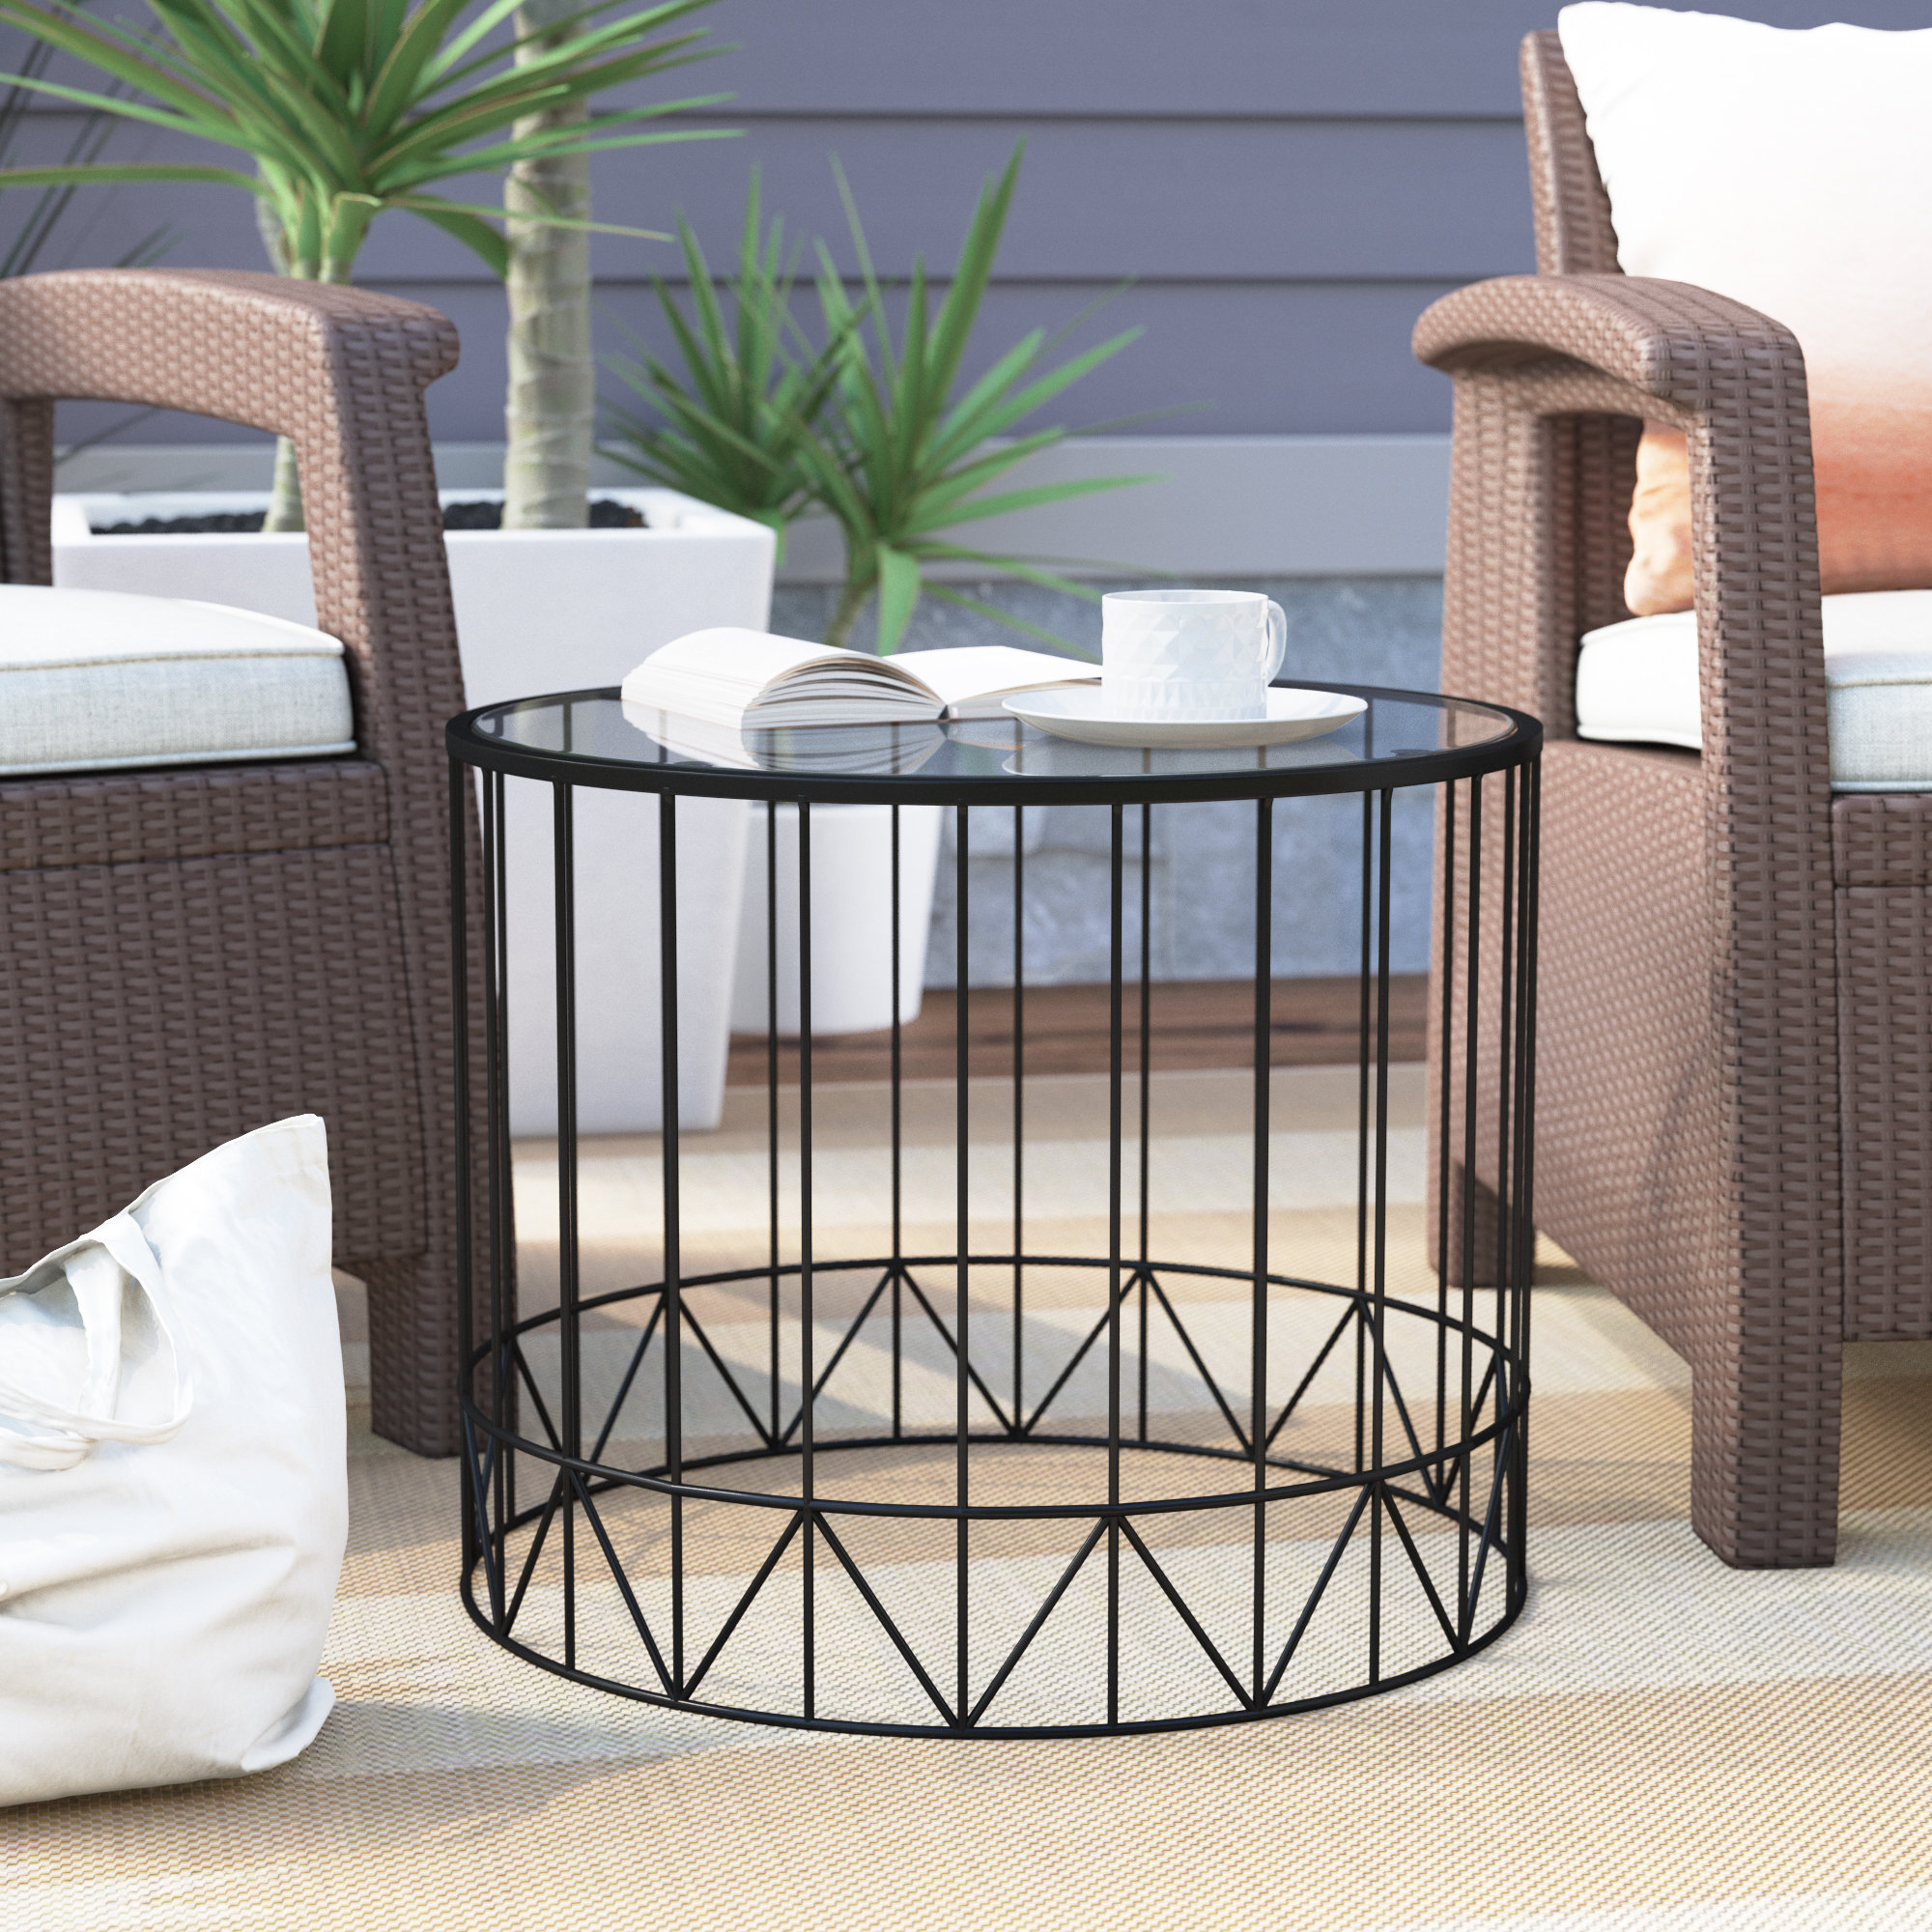 brayden studio pittard home garden patio accent metal piece coffee table set reviews wrought iron twin hand painted cabinets furniture mosaic bistro outdoor loveseat farm style